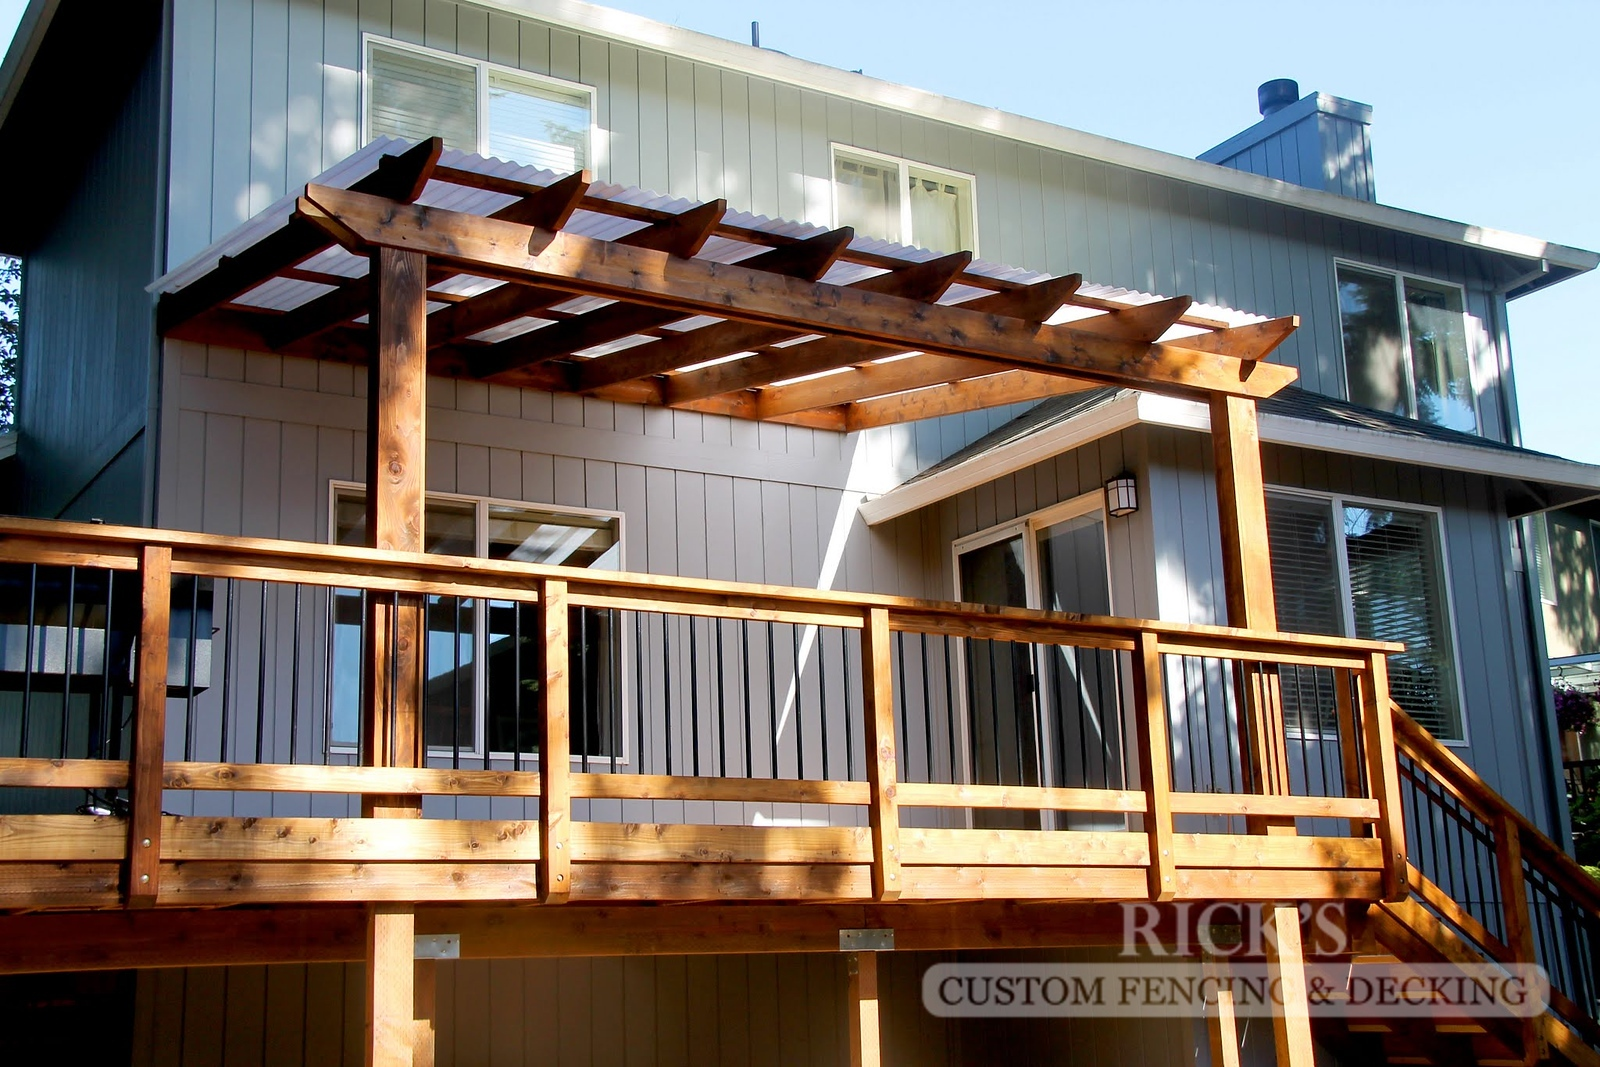 5056 - Wood-Framed Patio Cover with Acrylite Paneling